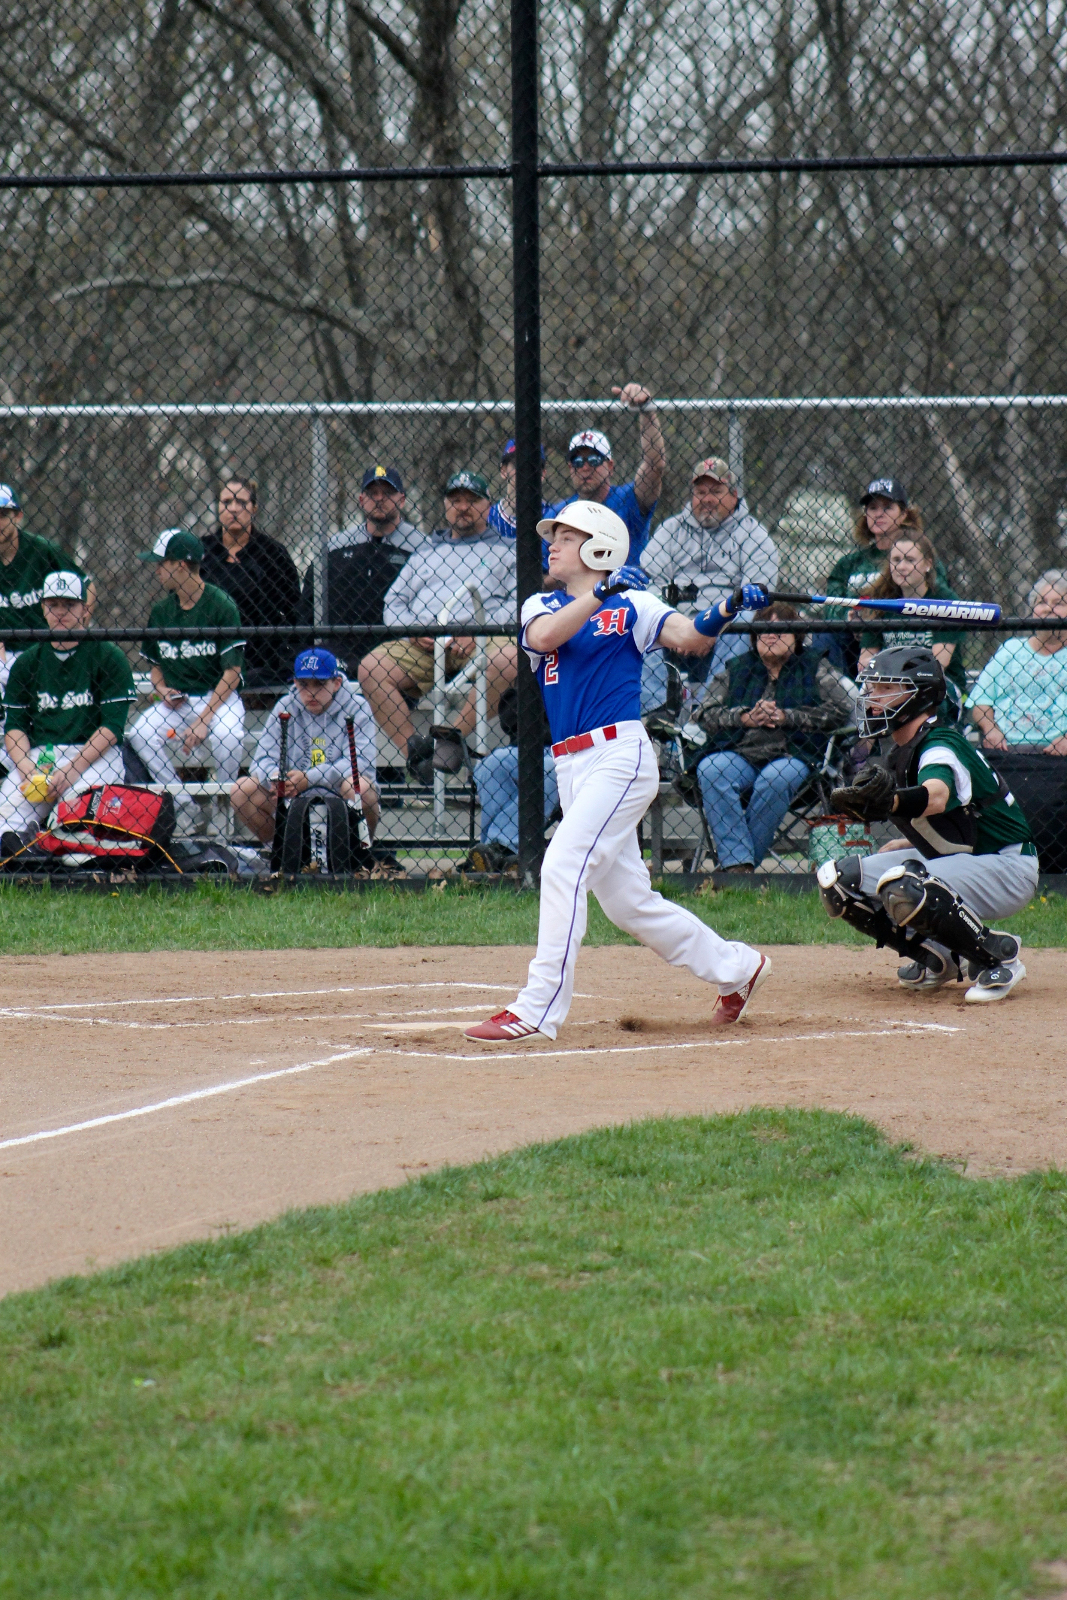 Varsity Hawks Have No Problems With St. Mary's, Winning in Five Innings